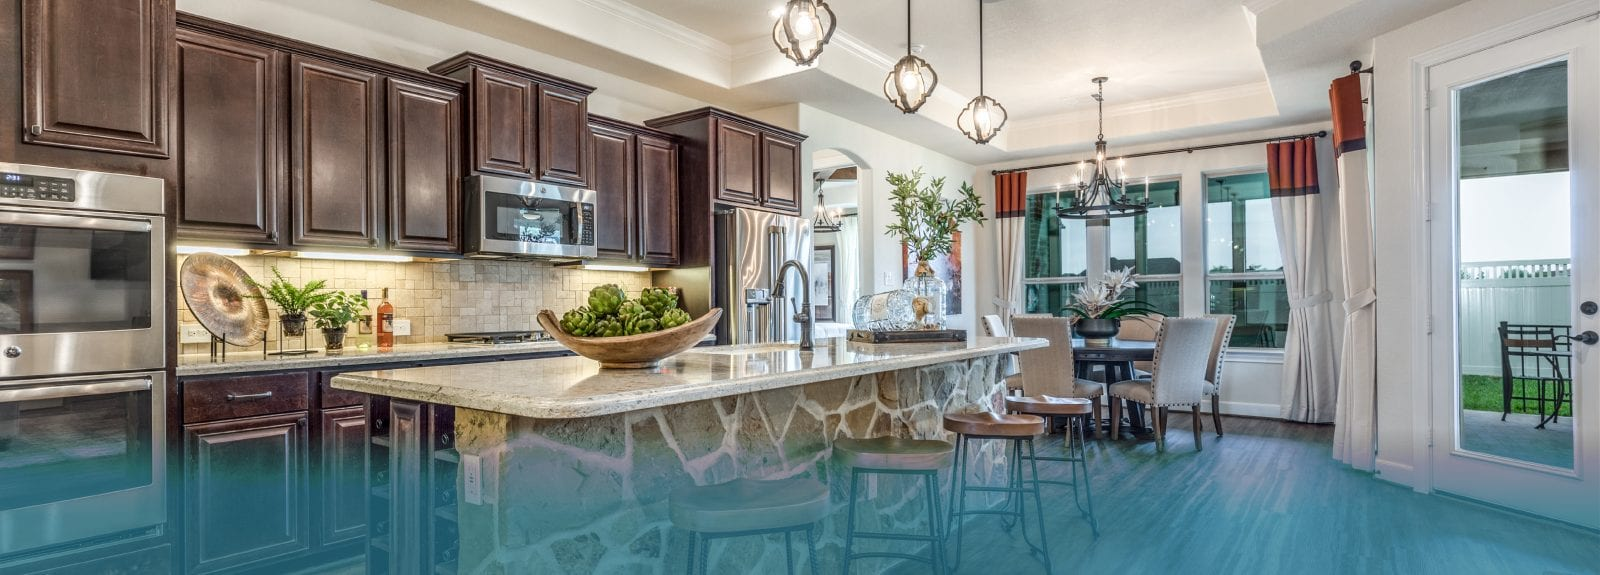 New Homes at Villas at White Oak in Conroe, TX